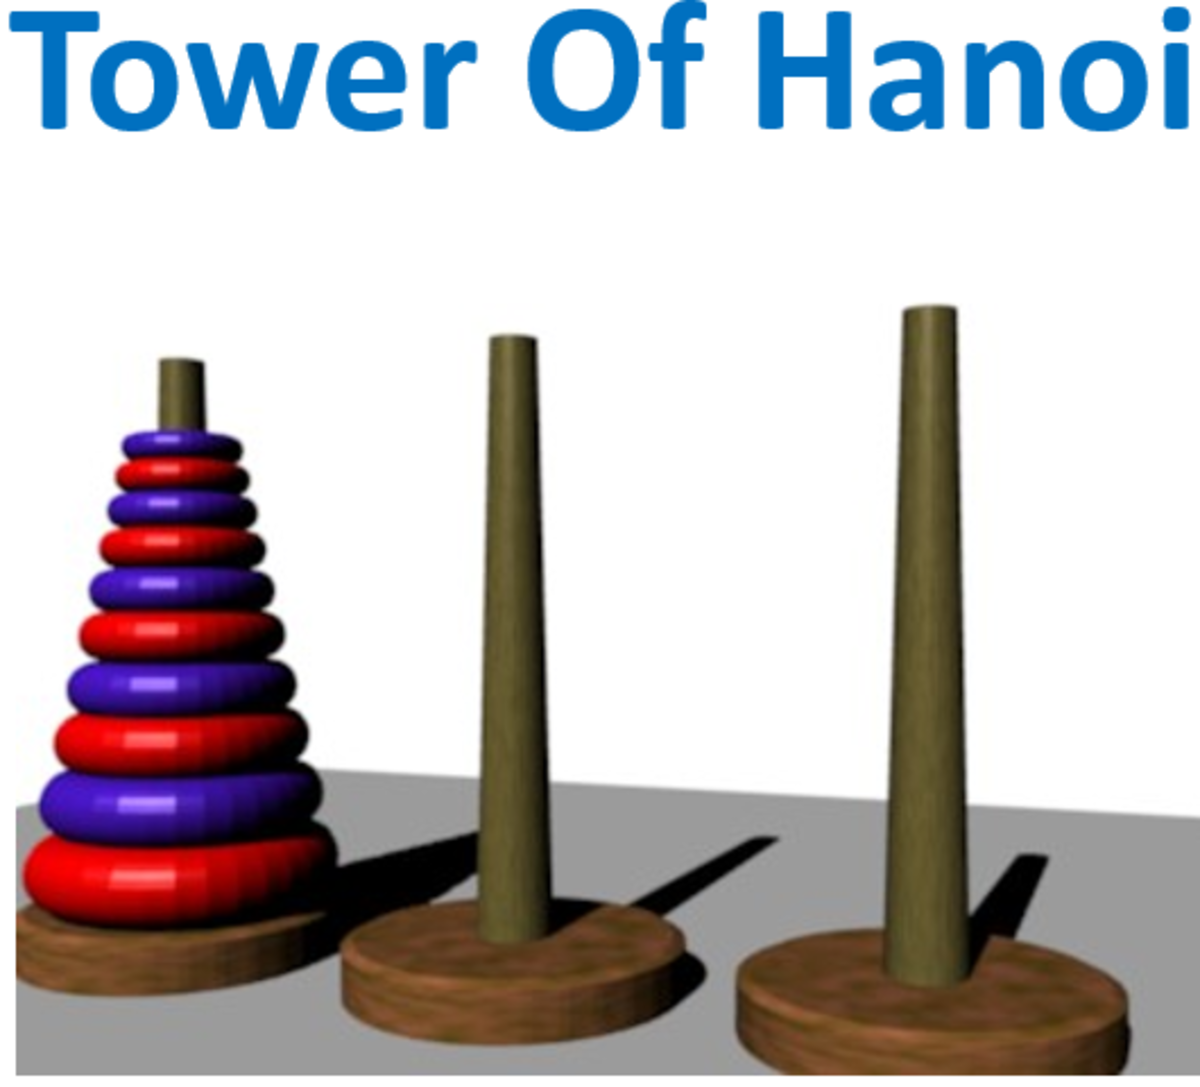 What Is It About the Tower of Hanoi?